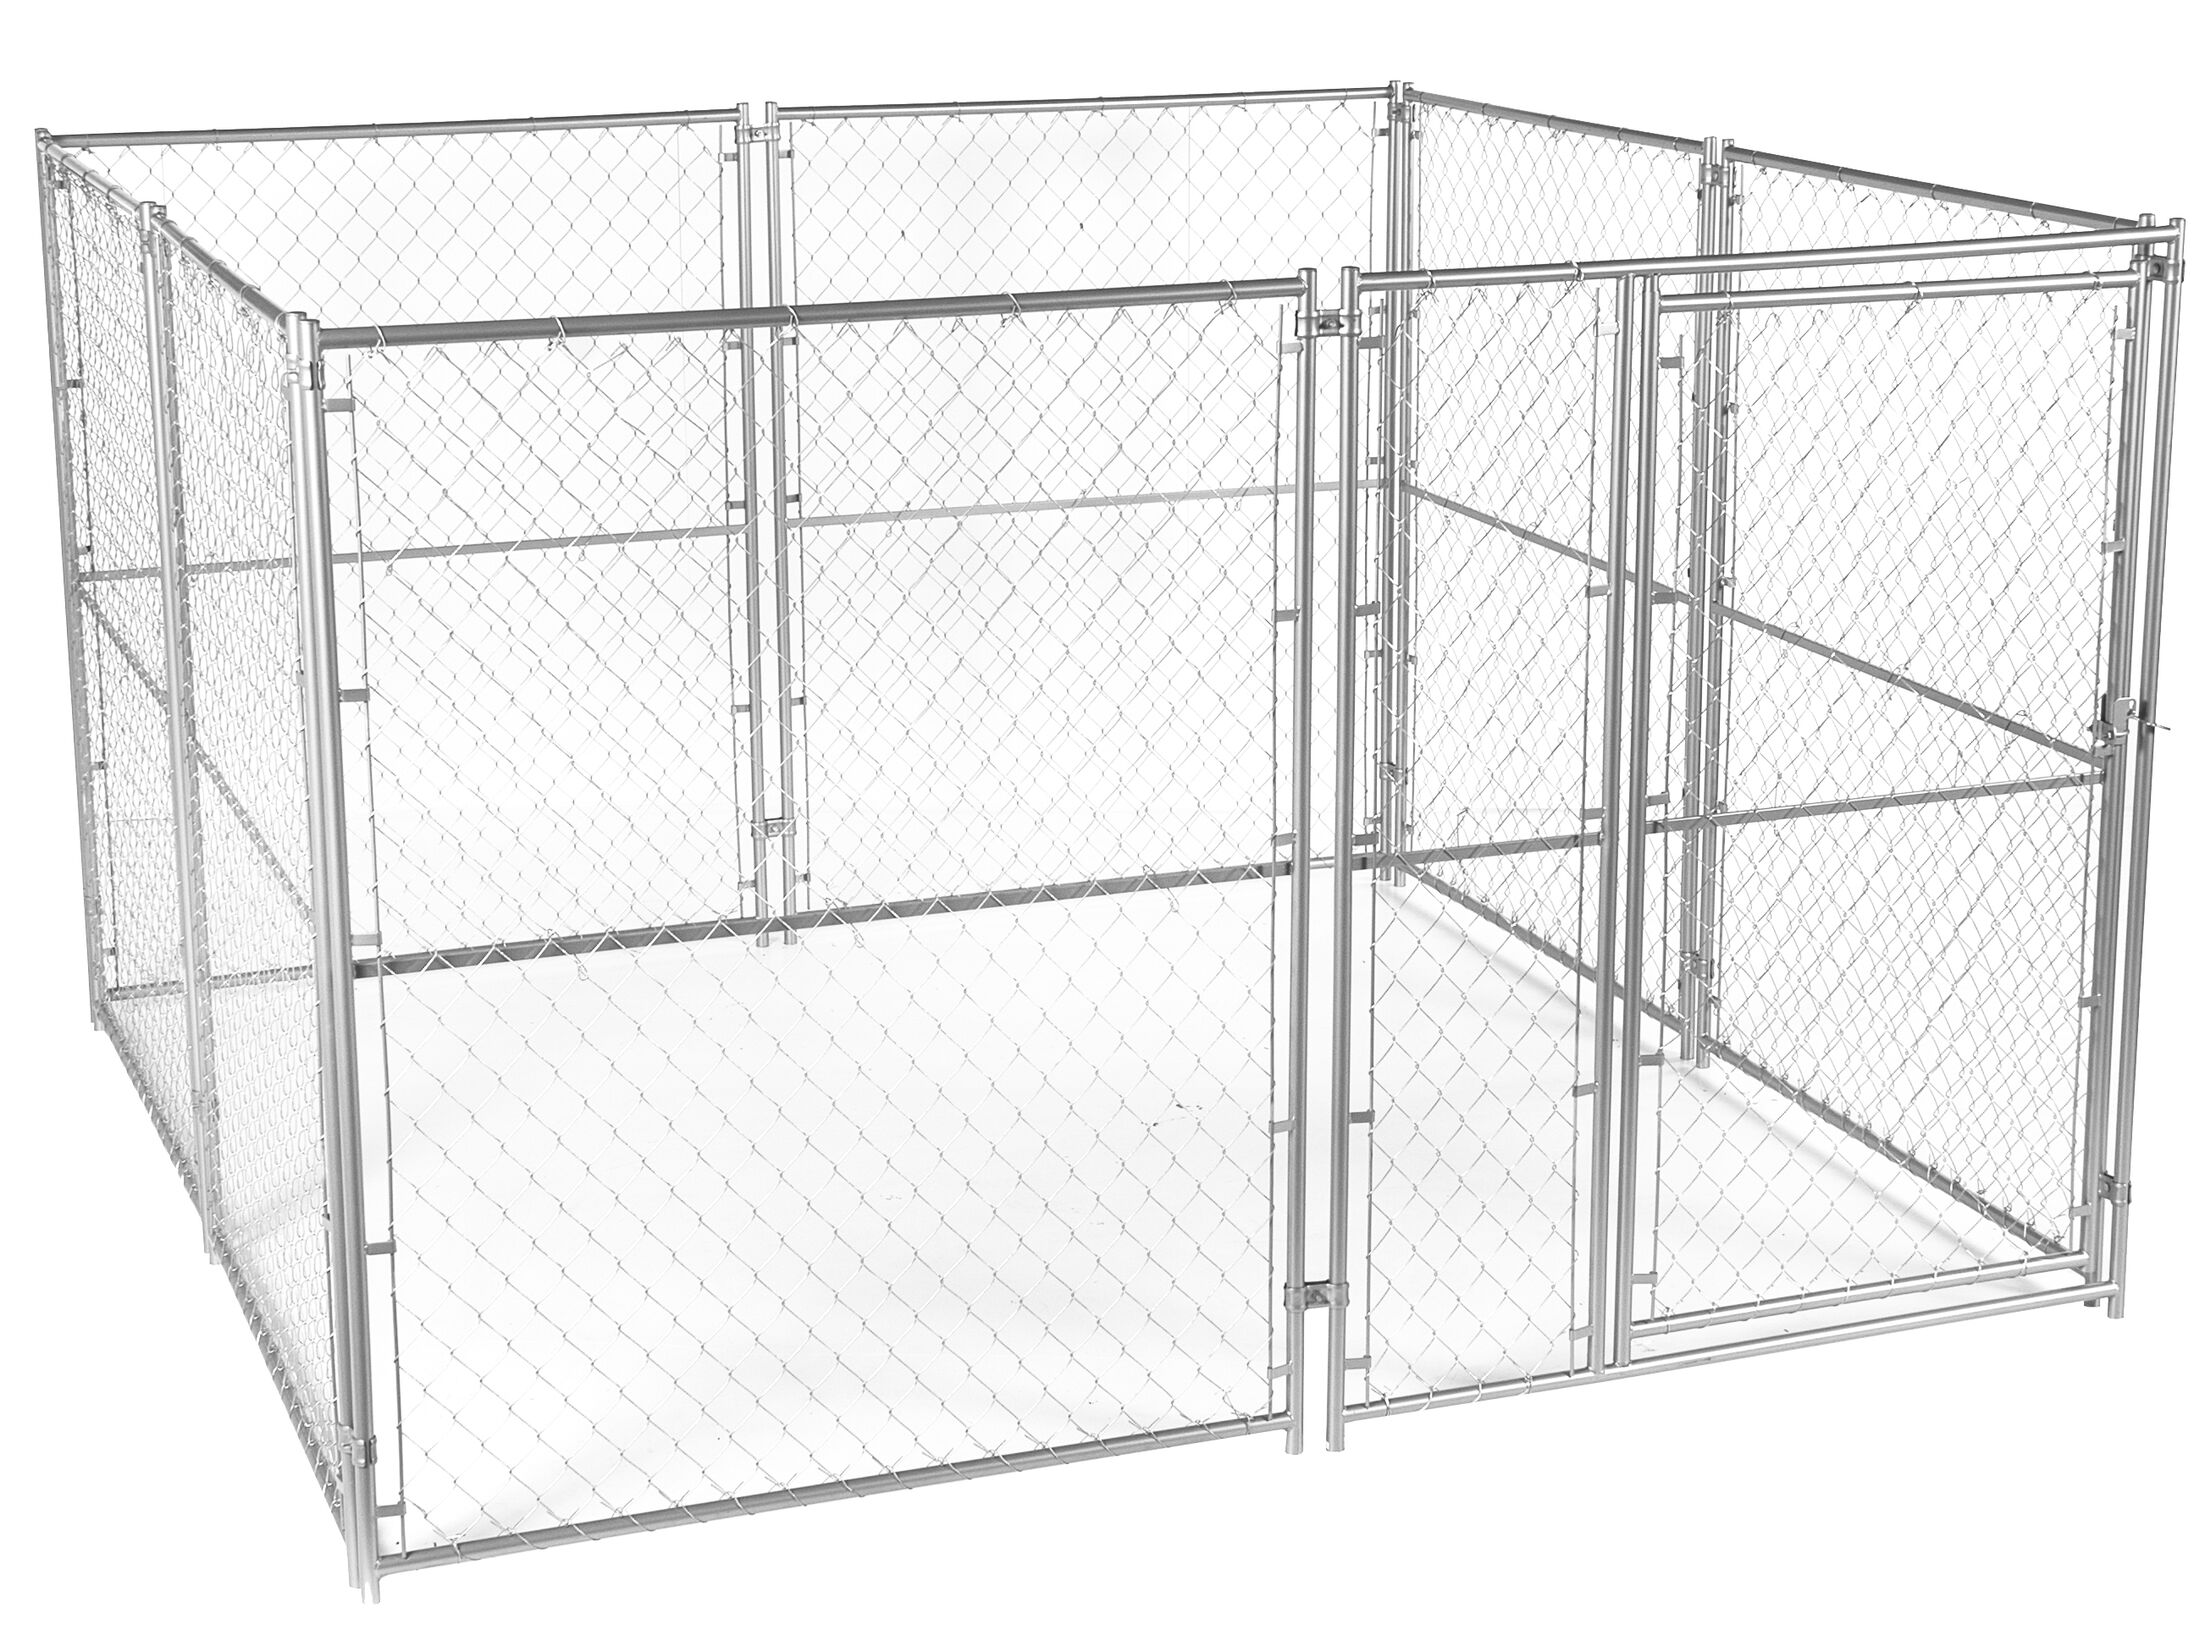 Lucky Dog� Chain Link Yard Kennel Size: 6' H x 10' W x 10' L